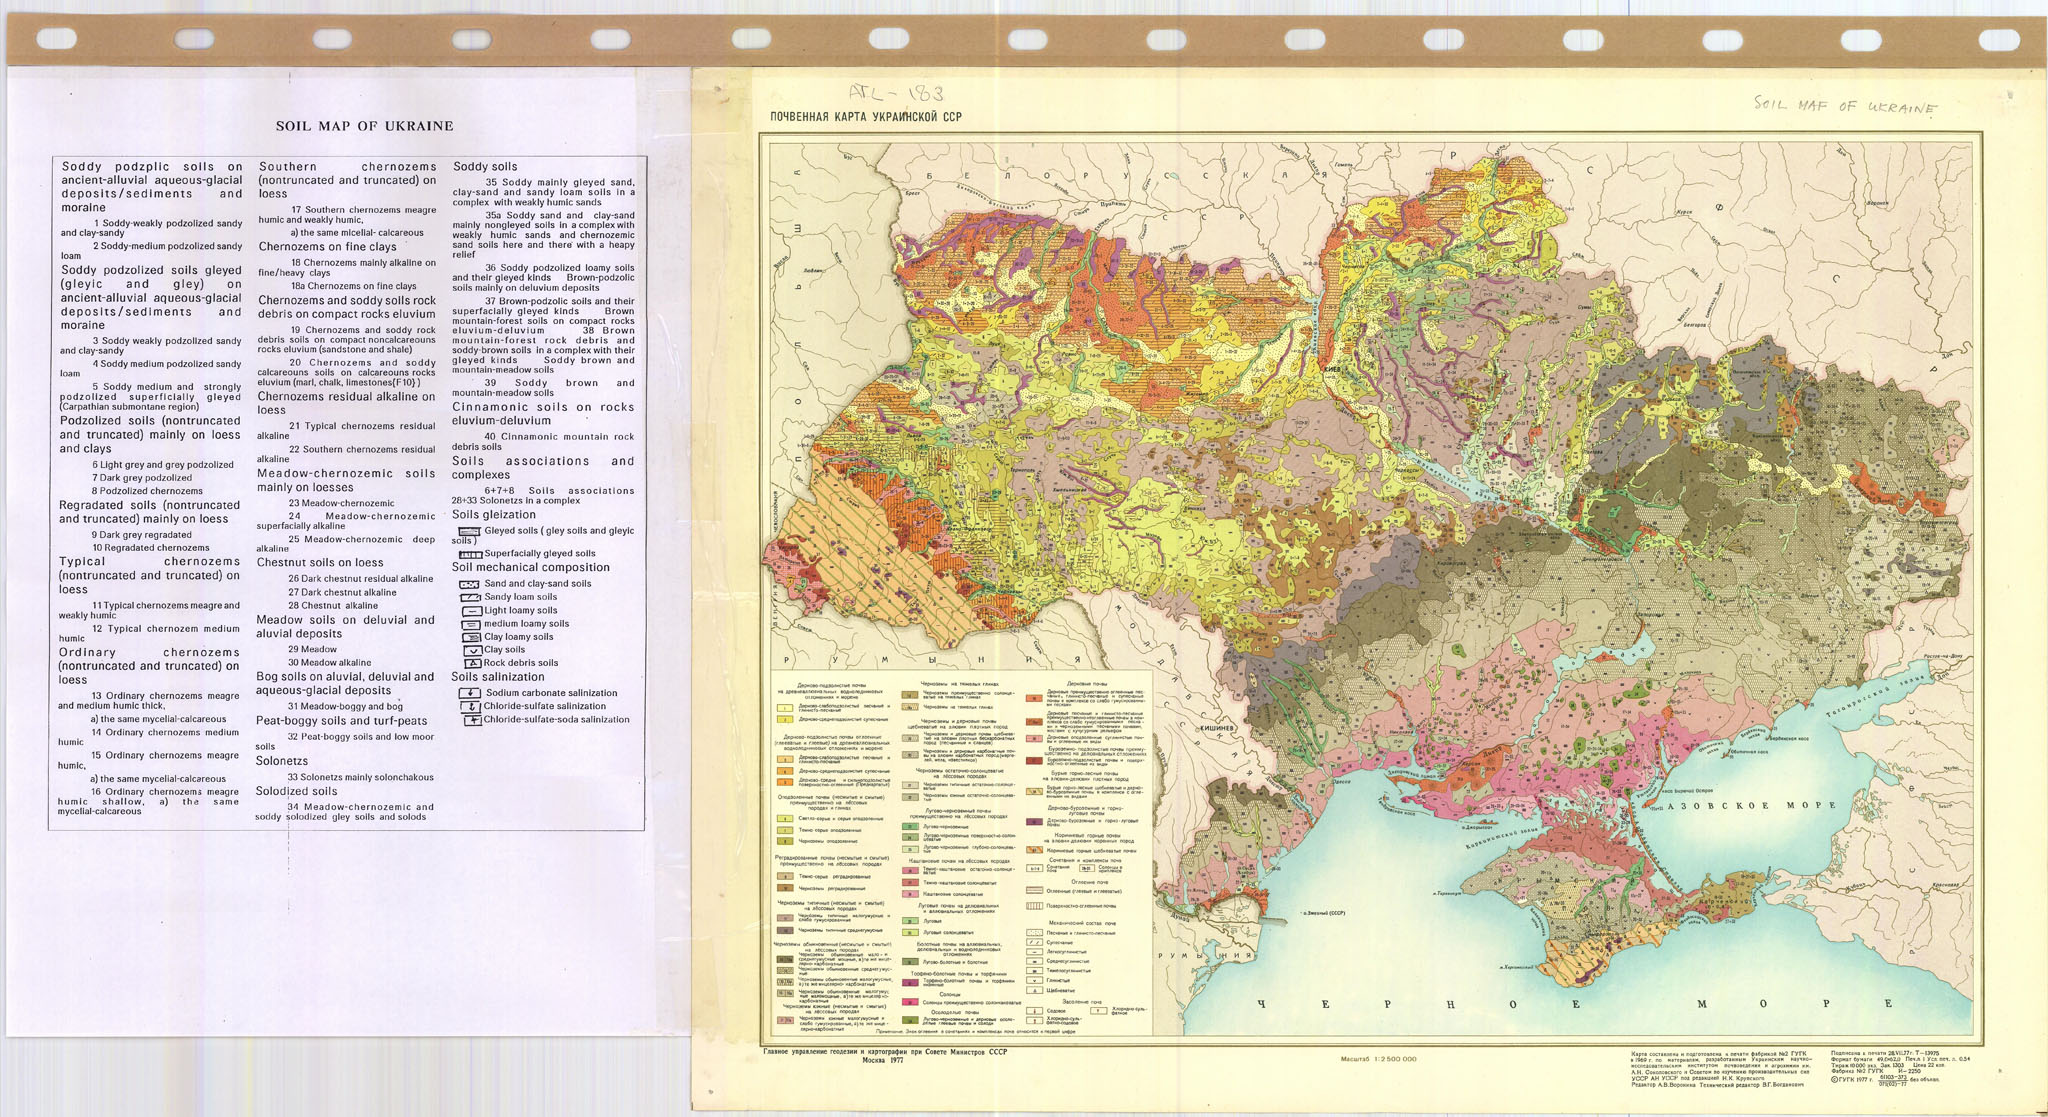 Soil map of Ukraine